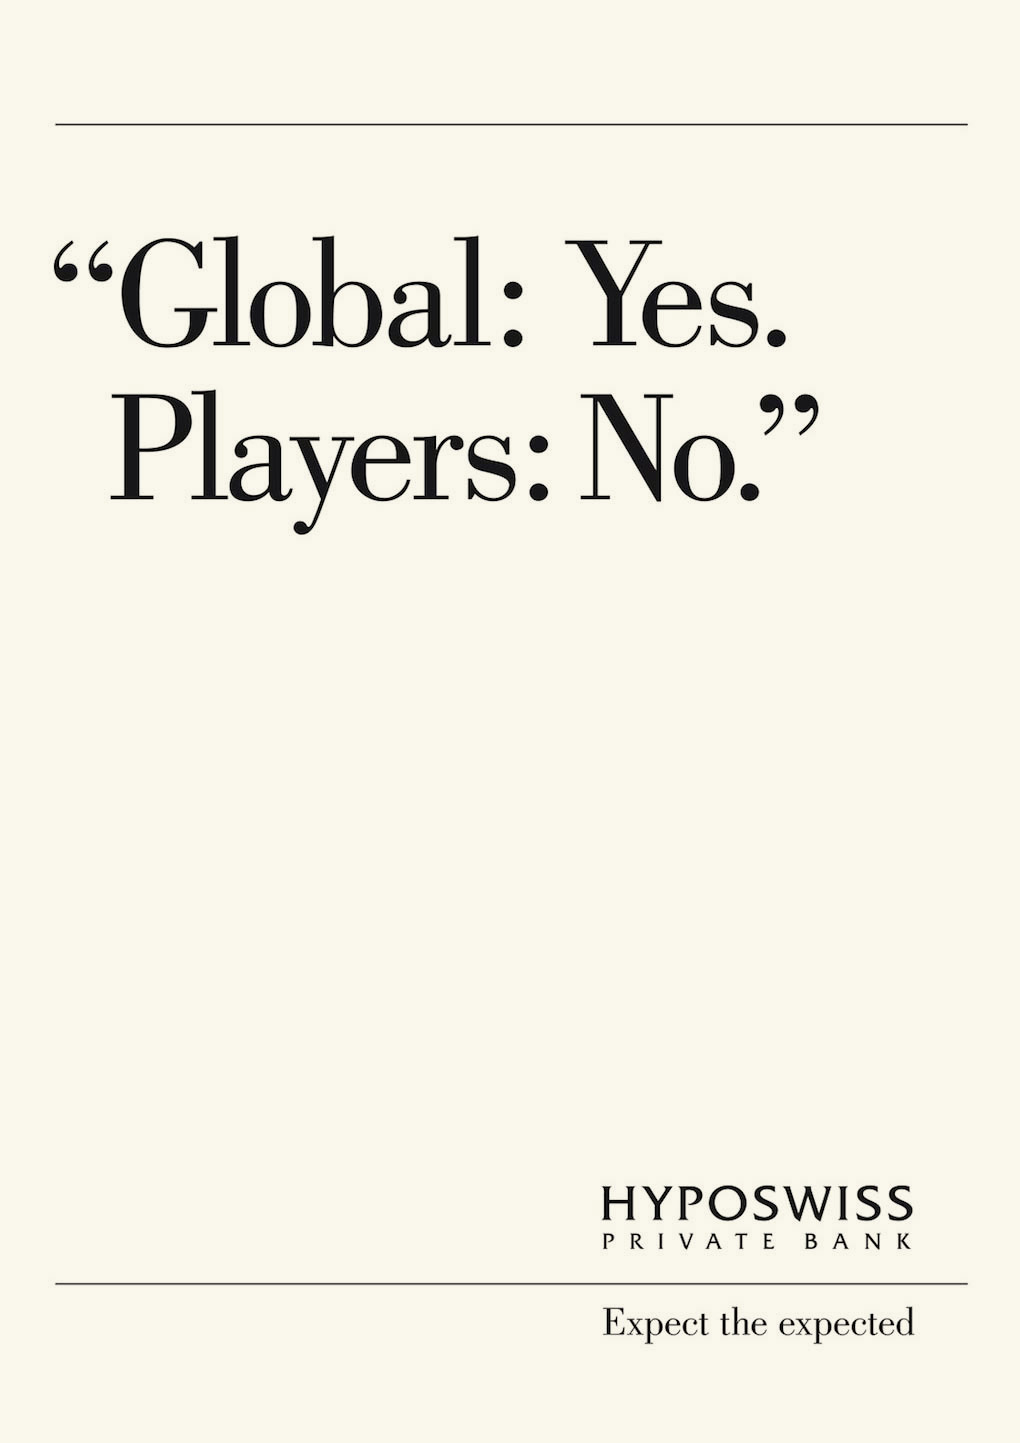 Hyposwiss_Print_Global